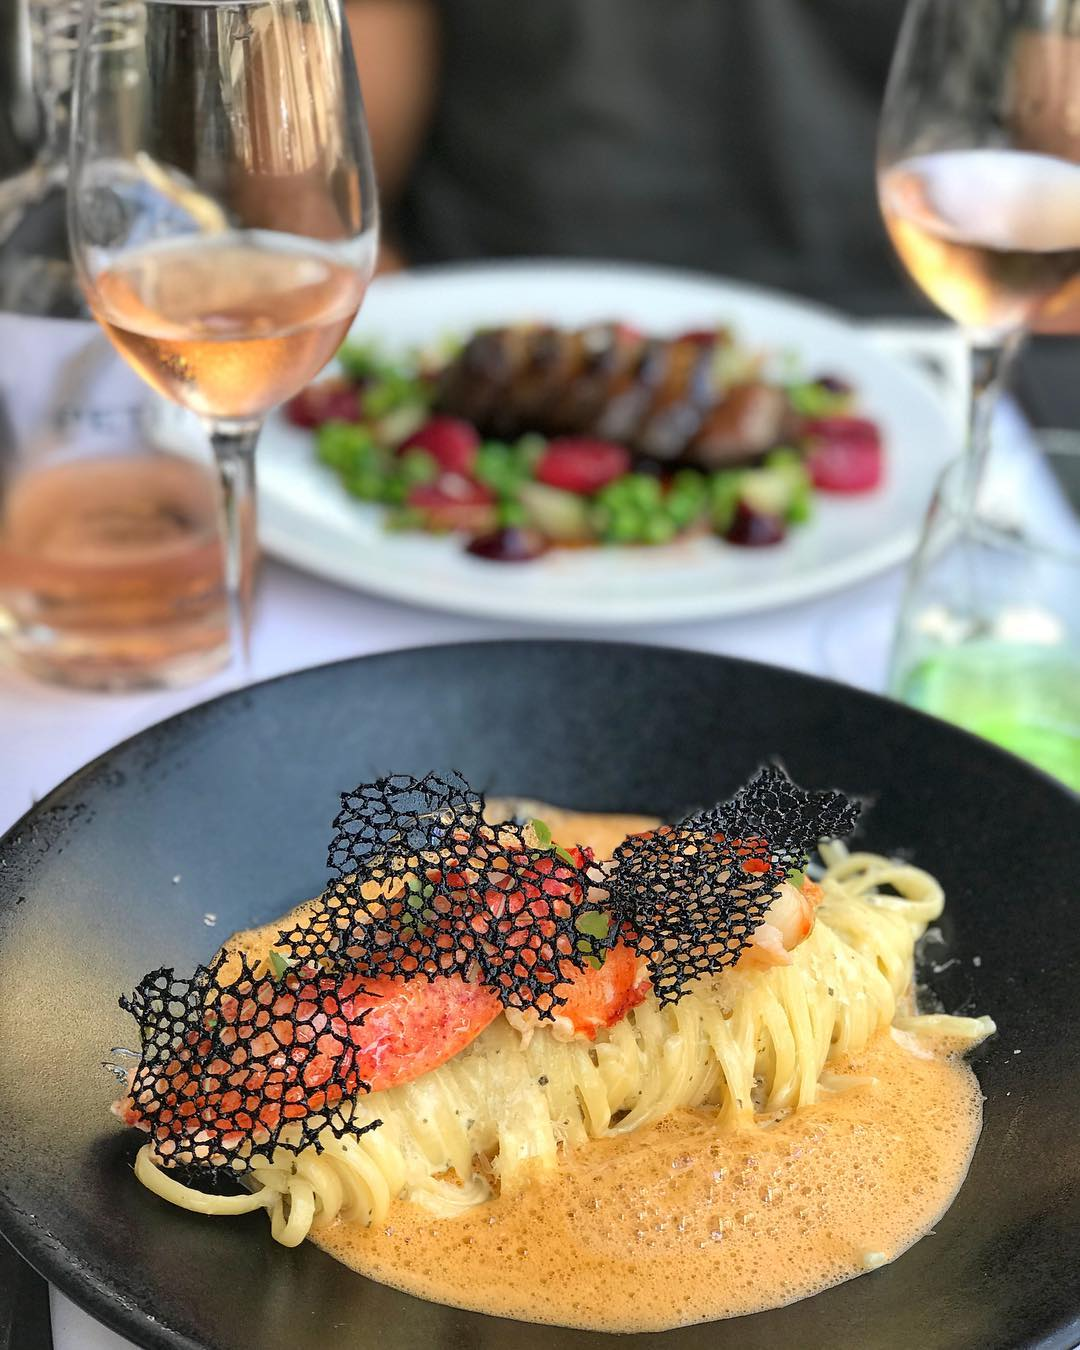 Top 6 best restaurants in Nice - Mon Petit Café - Credit linamartinstam